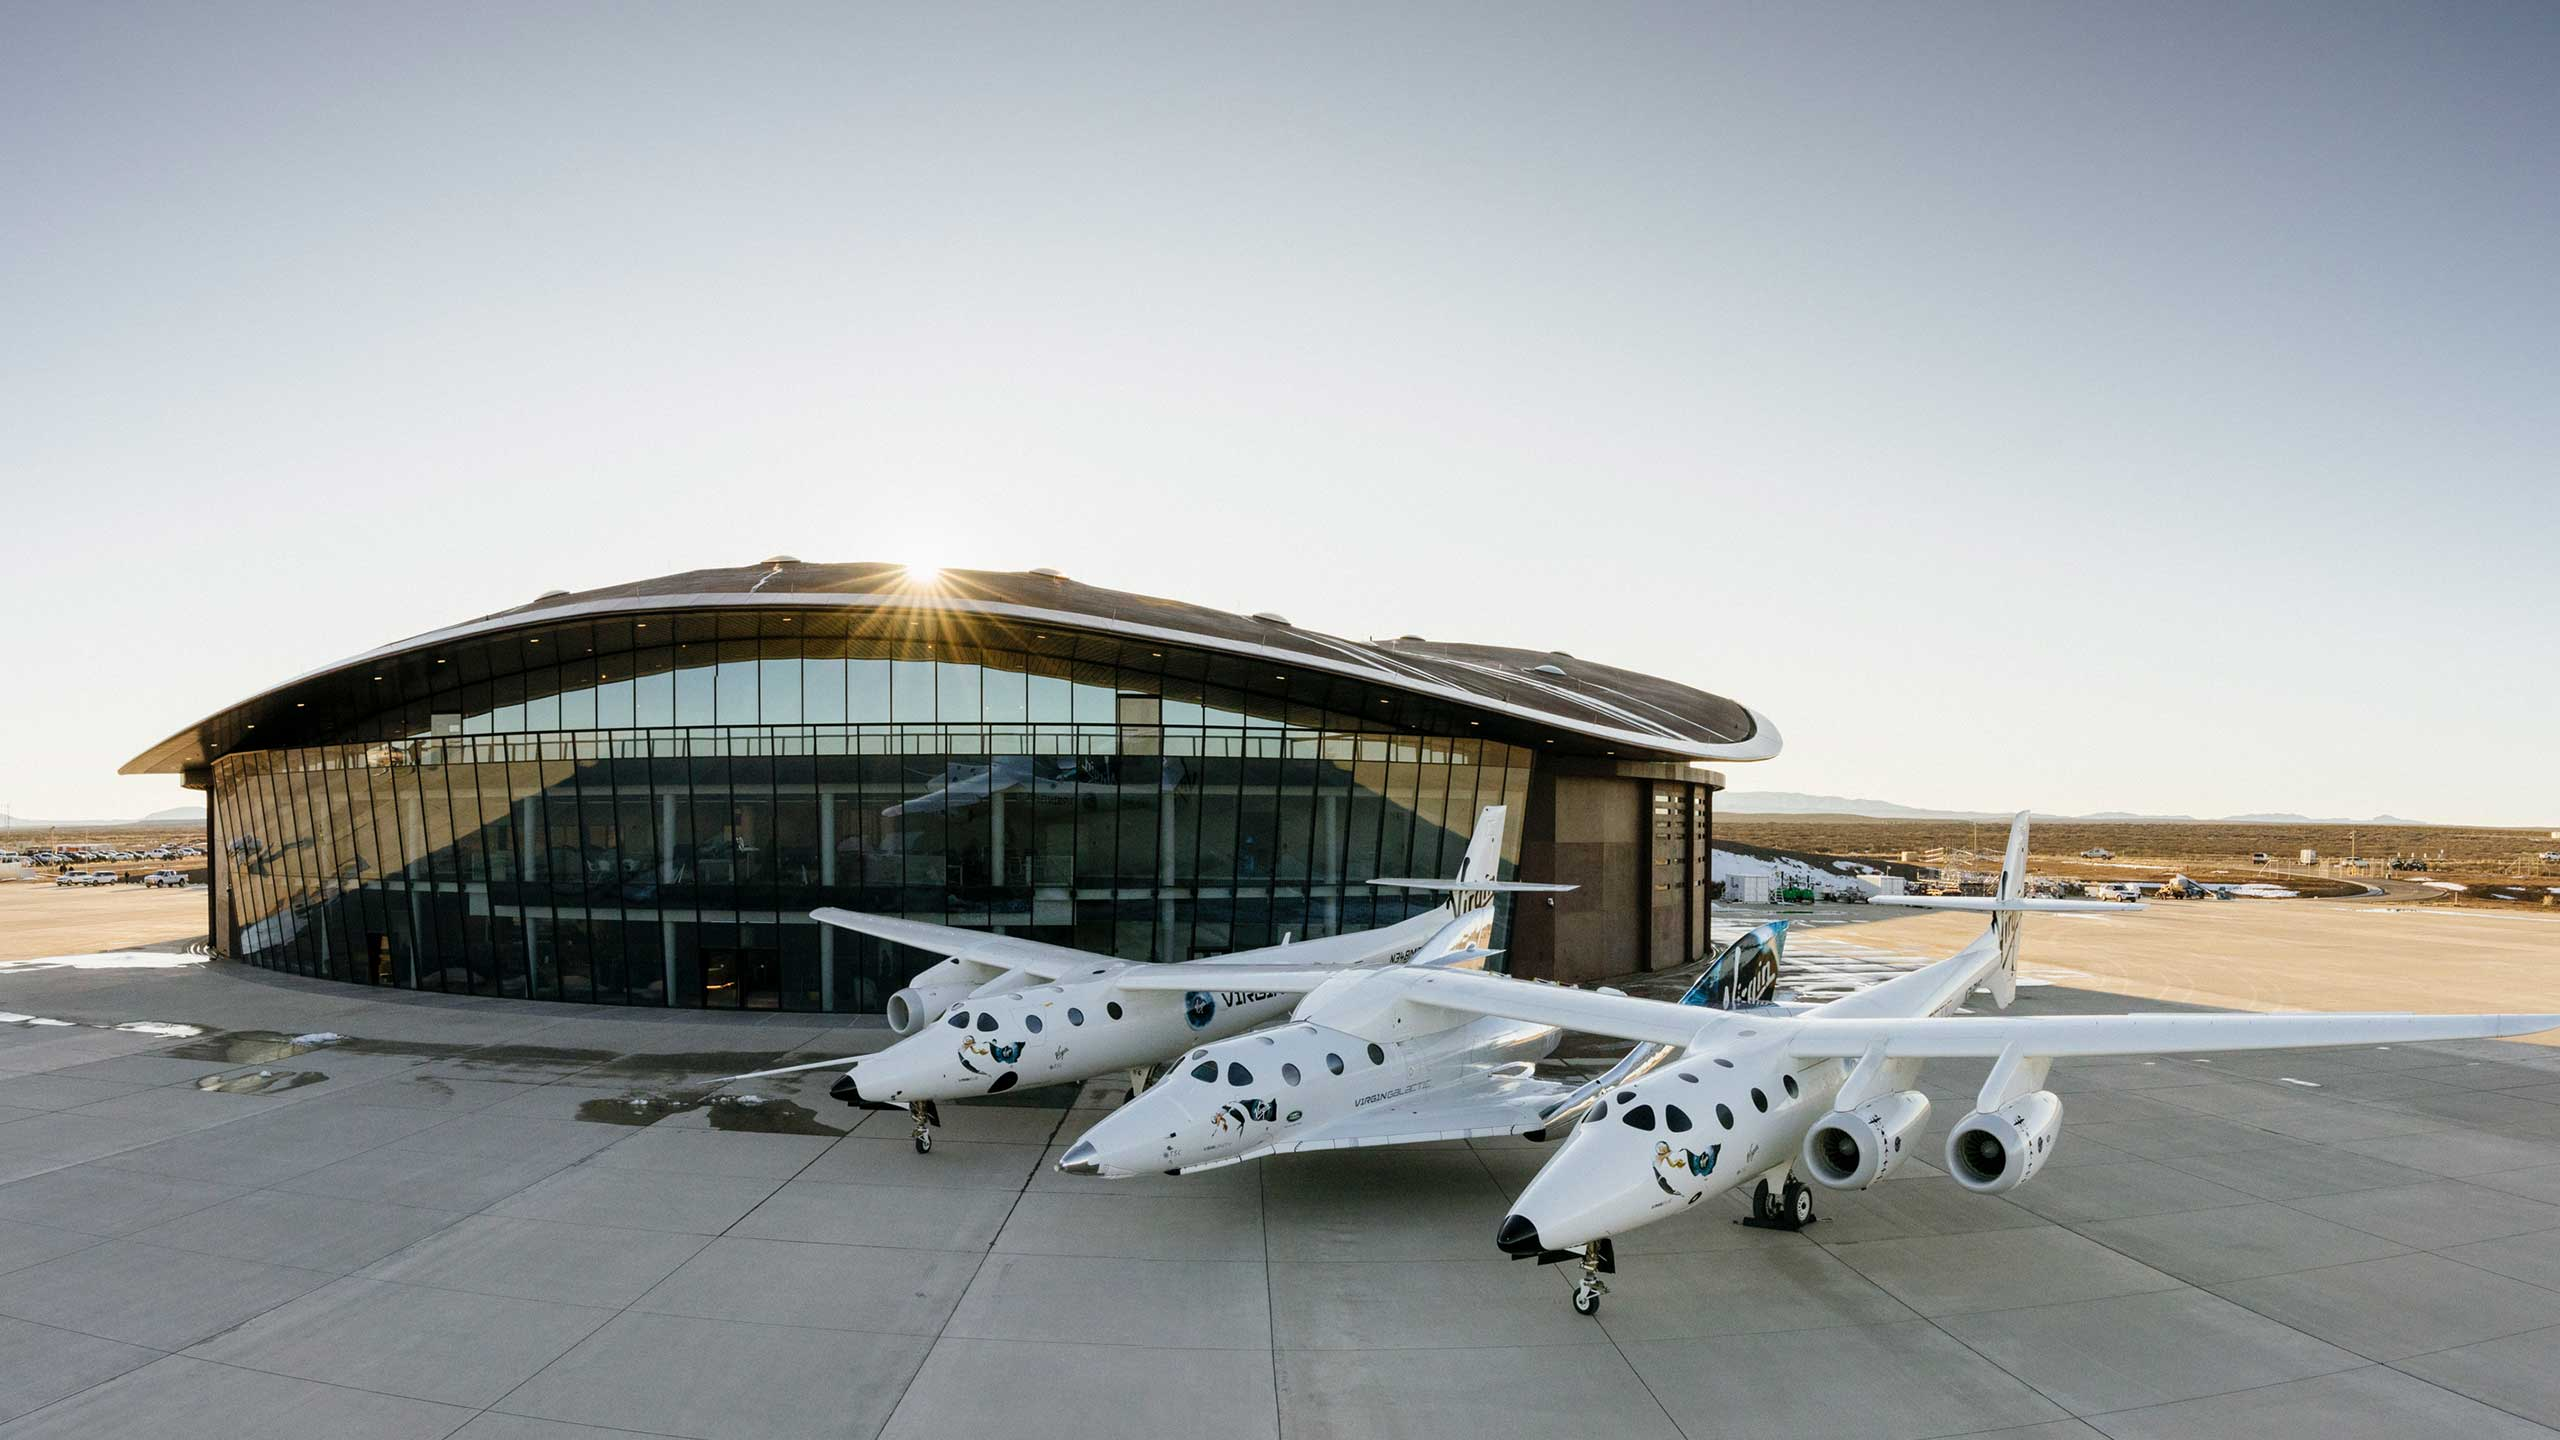 The Virgin Galactic Spaceflight System in front of Spaceport America